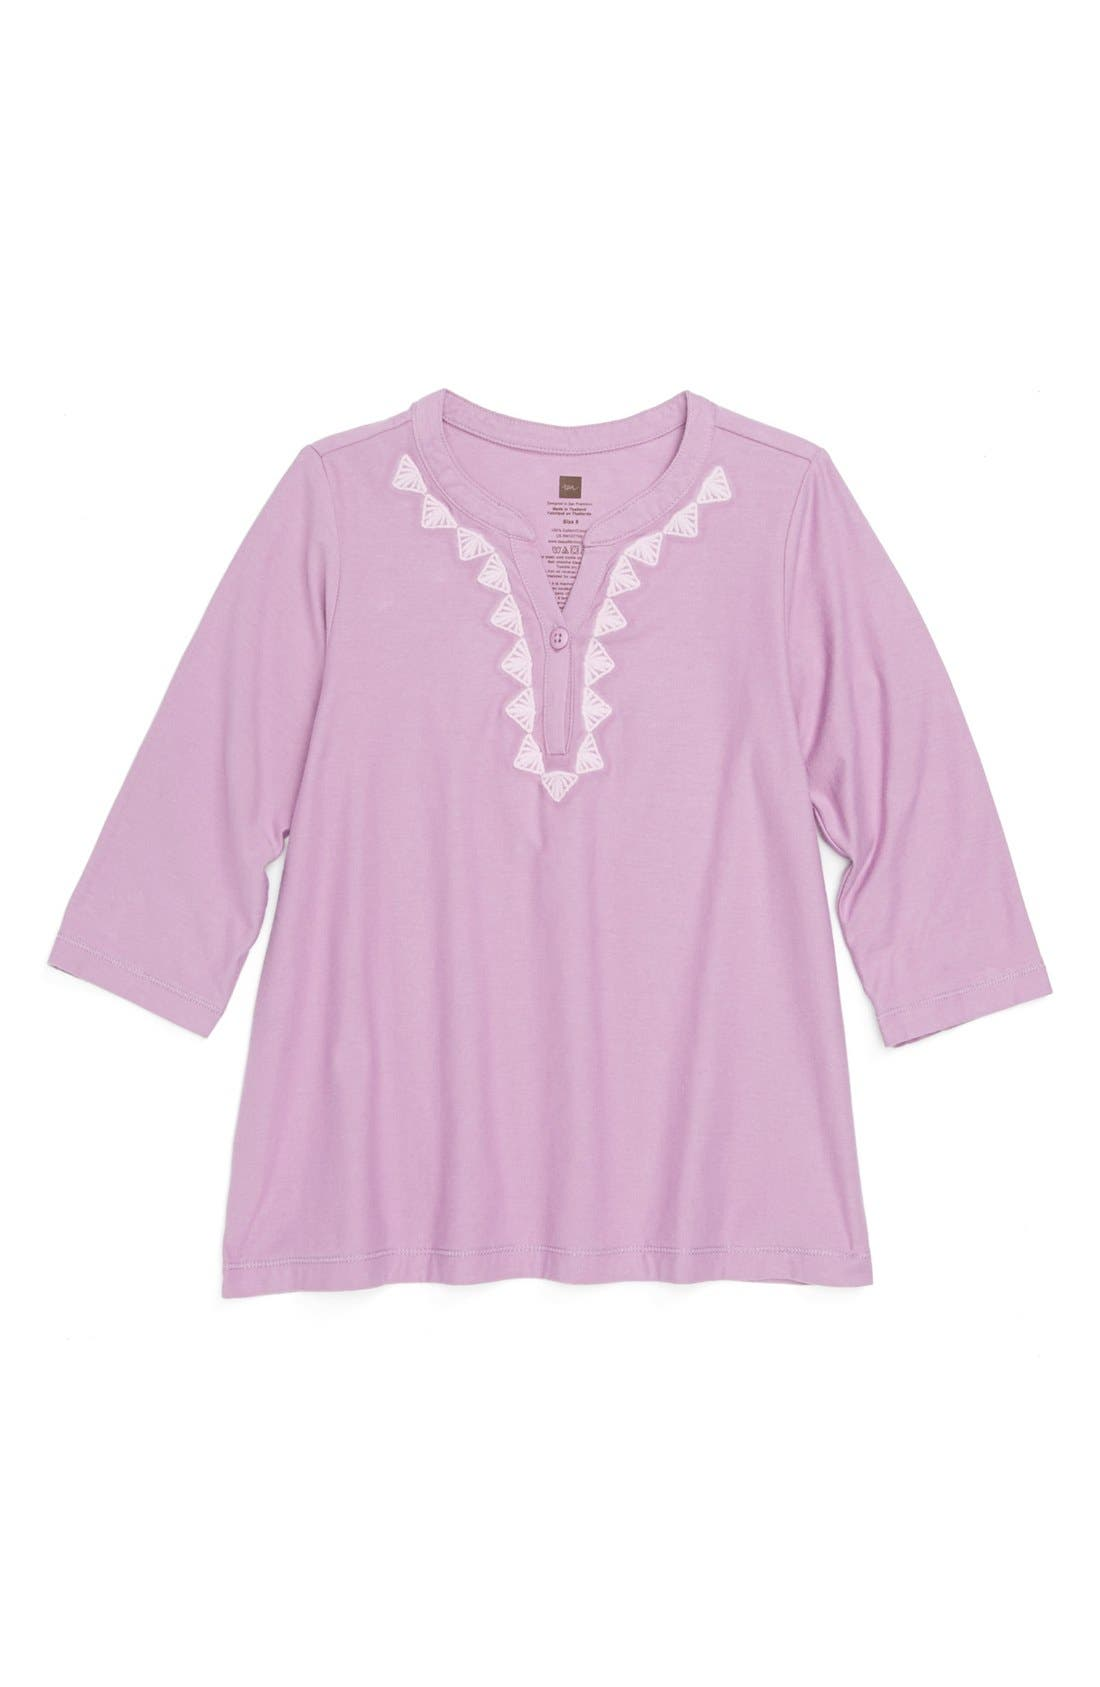 Alternate Image 1 Selected - Tea Collection 'Imane' Embroidered Top (Little Girls & Big Girls)